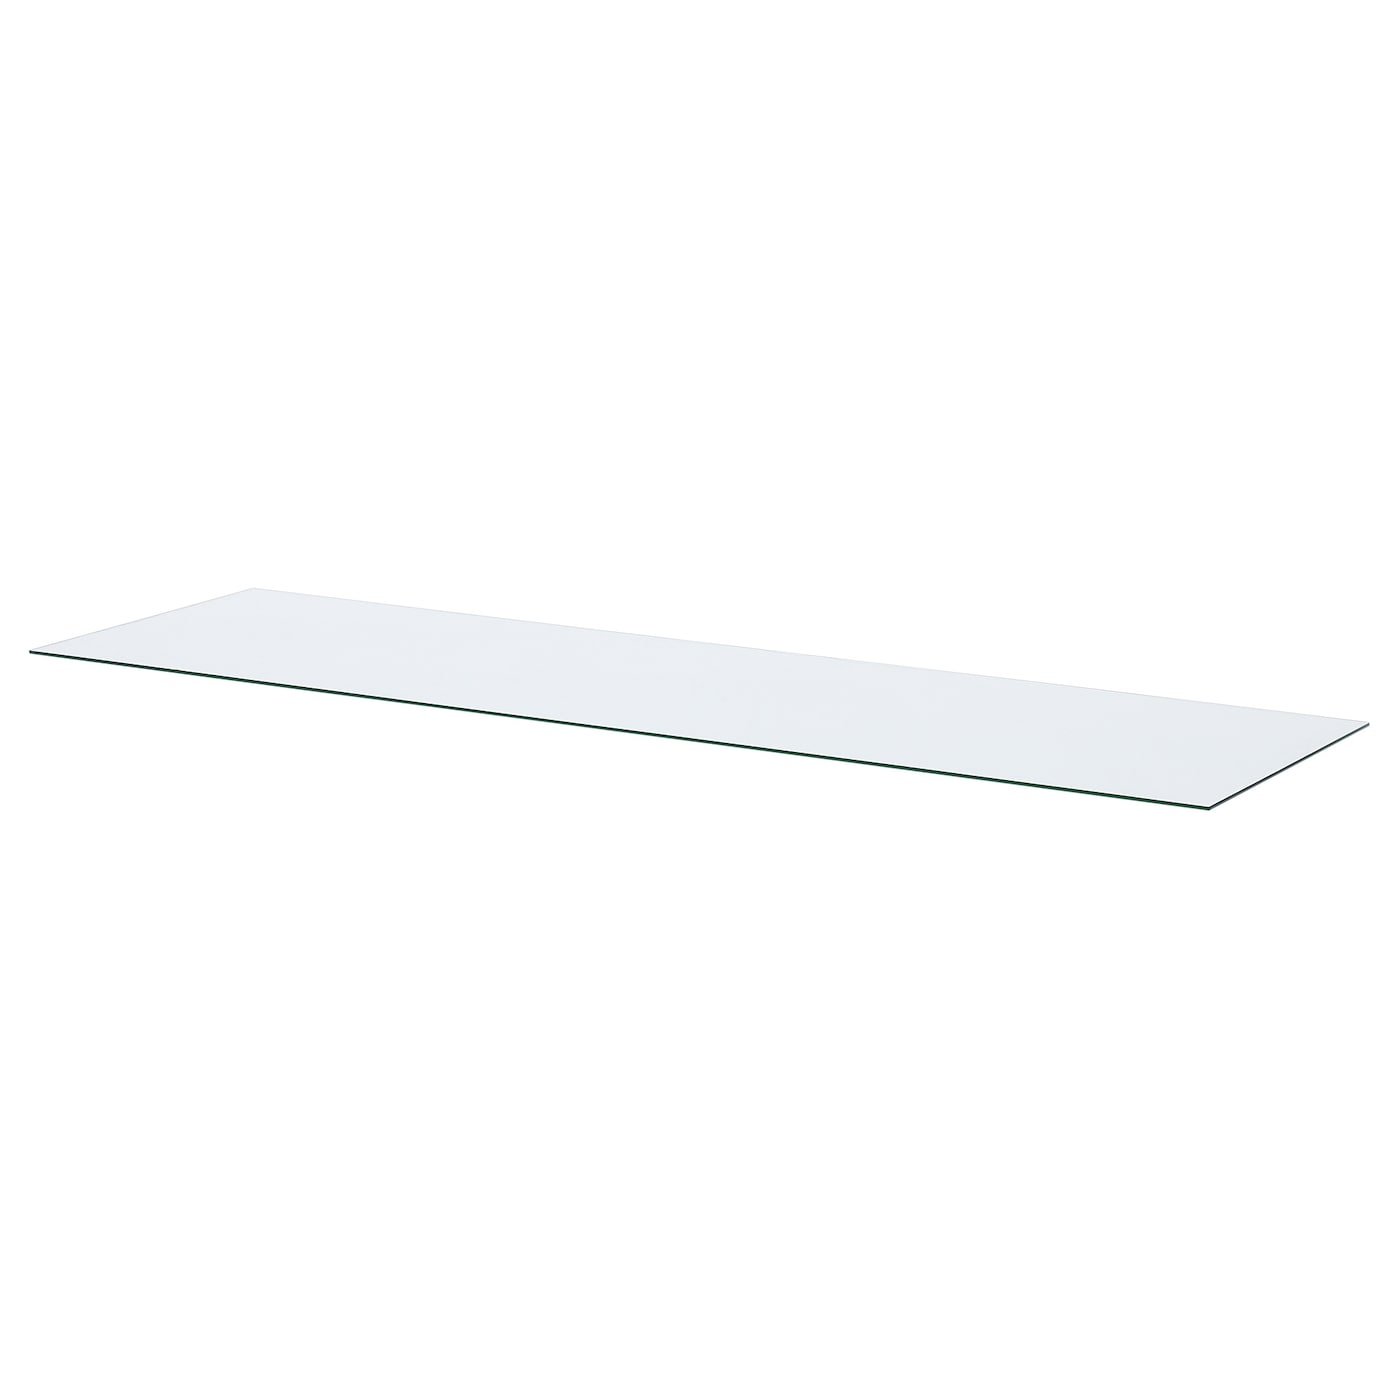 IKEA HEMNES top panel for TV Made of tempered glass that is both hardwearing and durable.